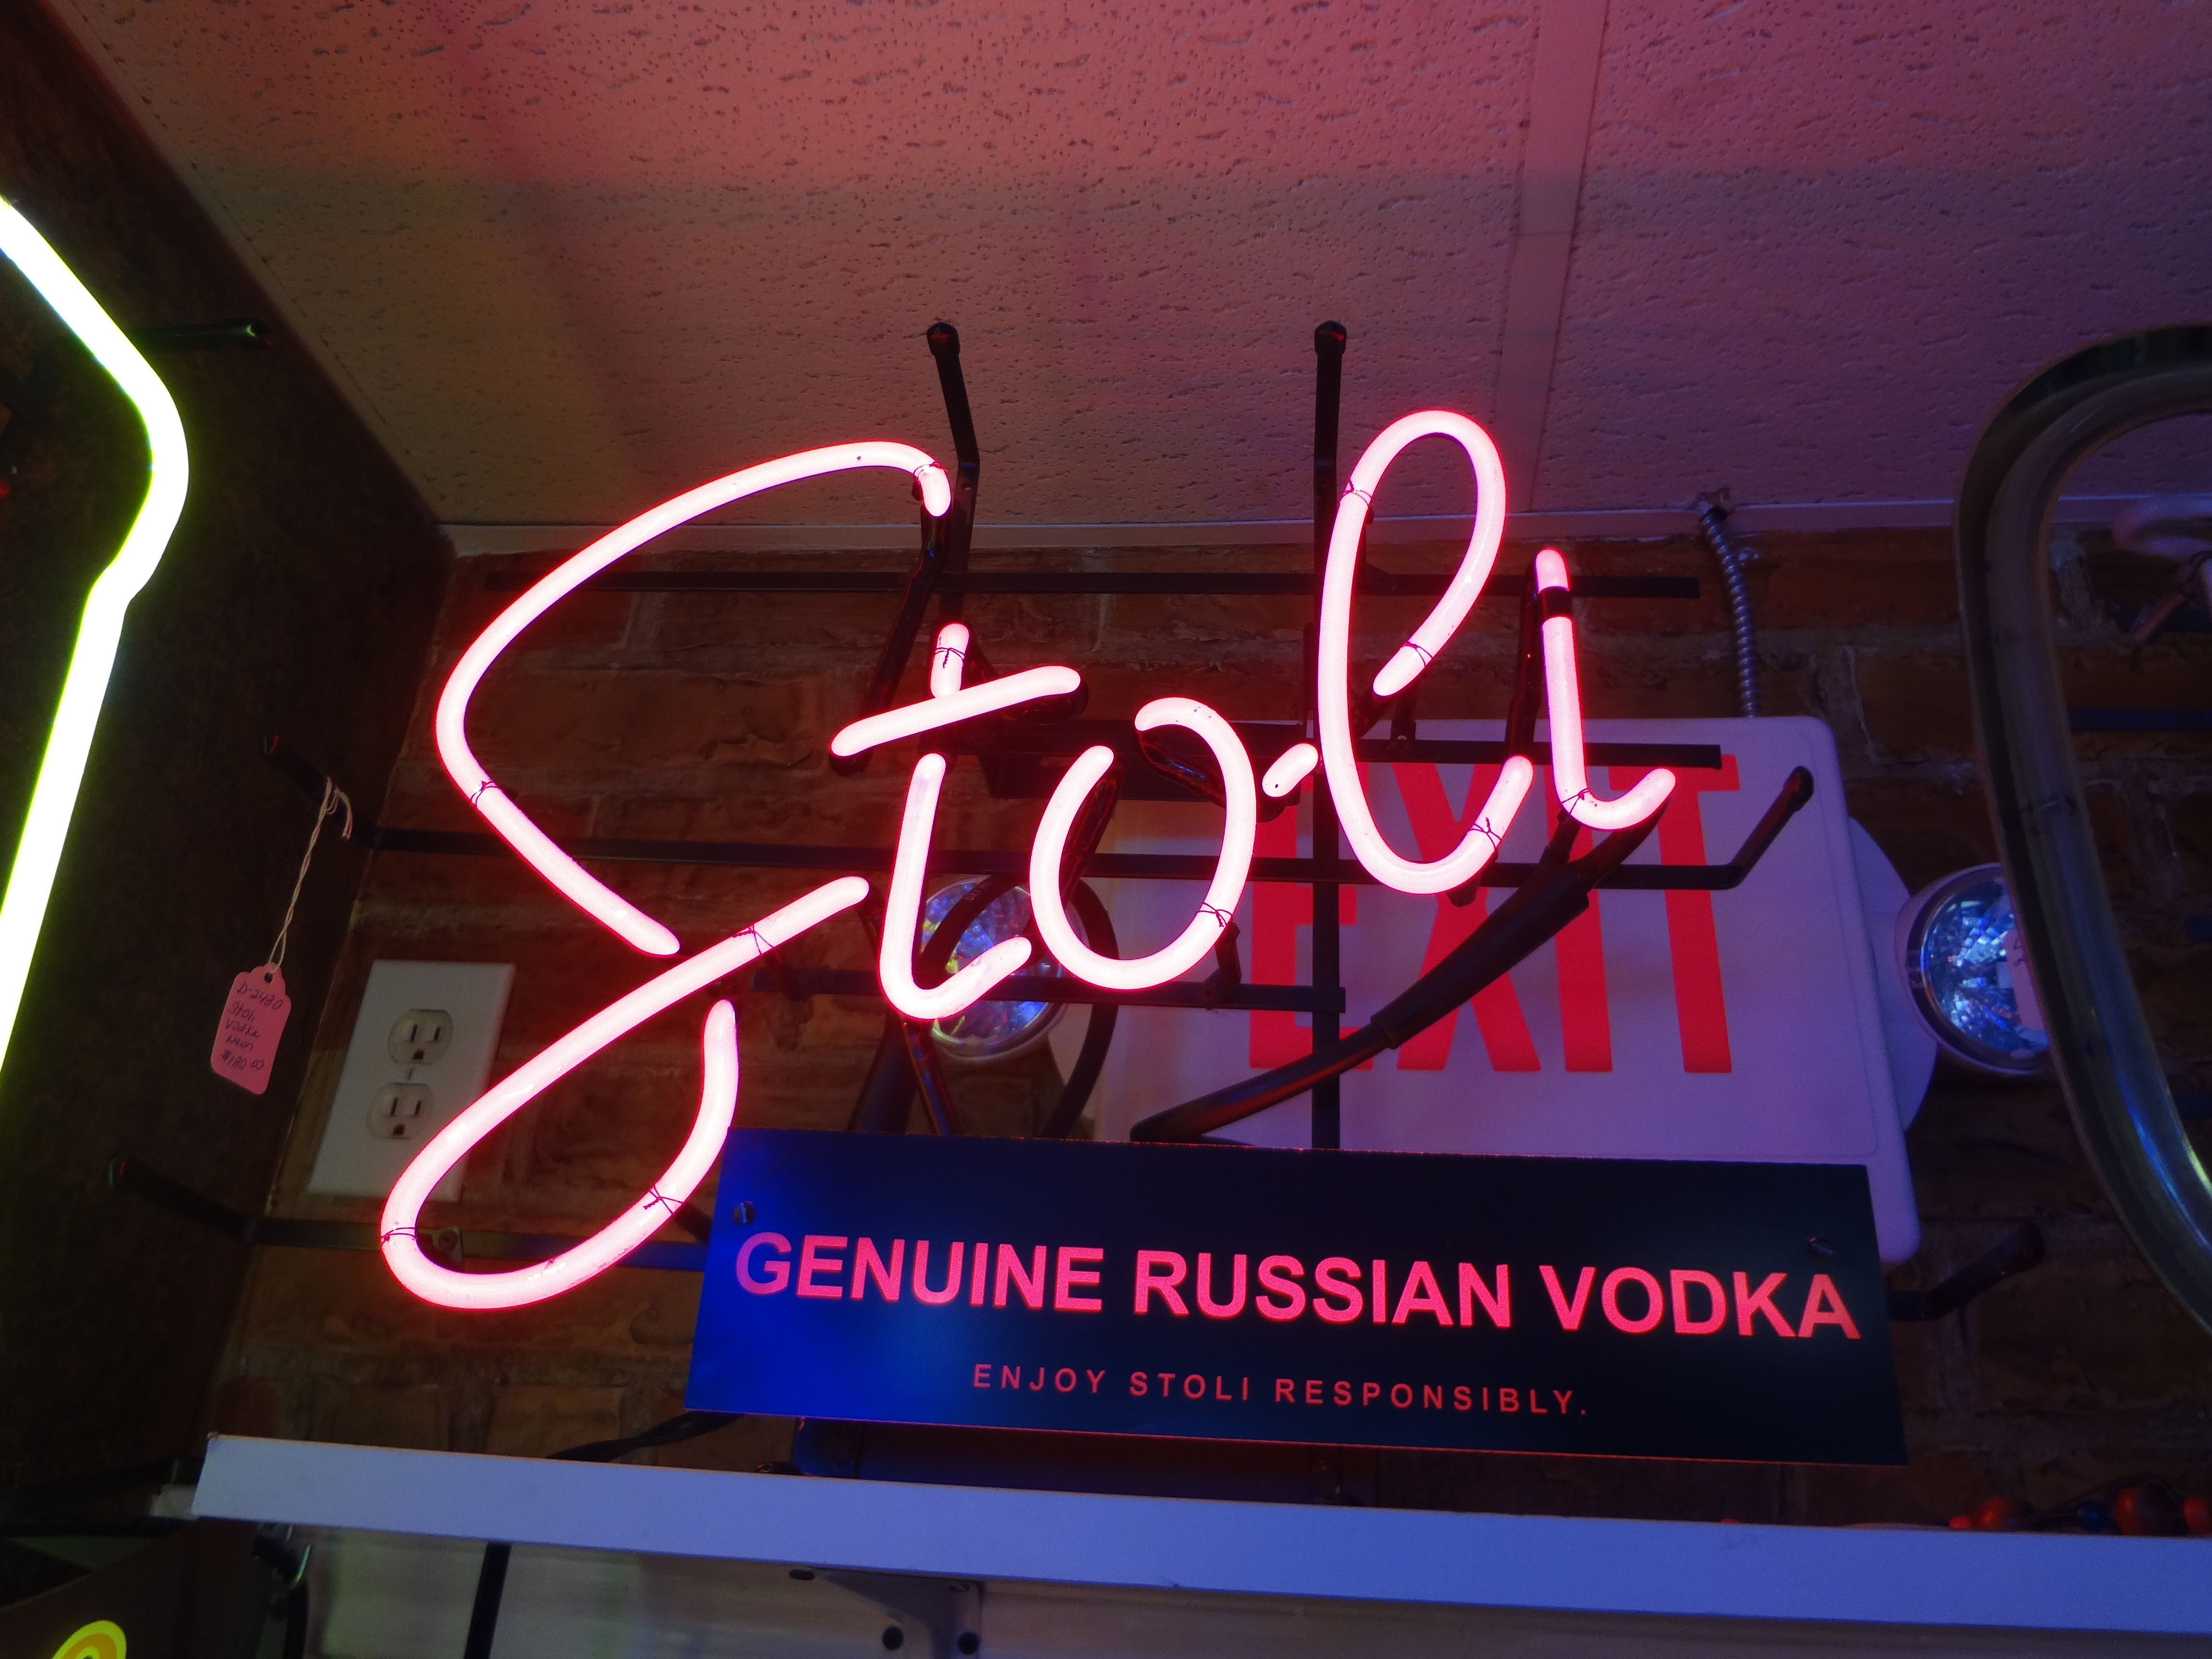 Man Cave Signs Melbourne : Vodka neon signs signage xstar collectables